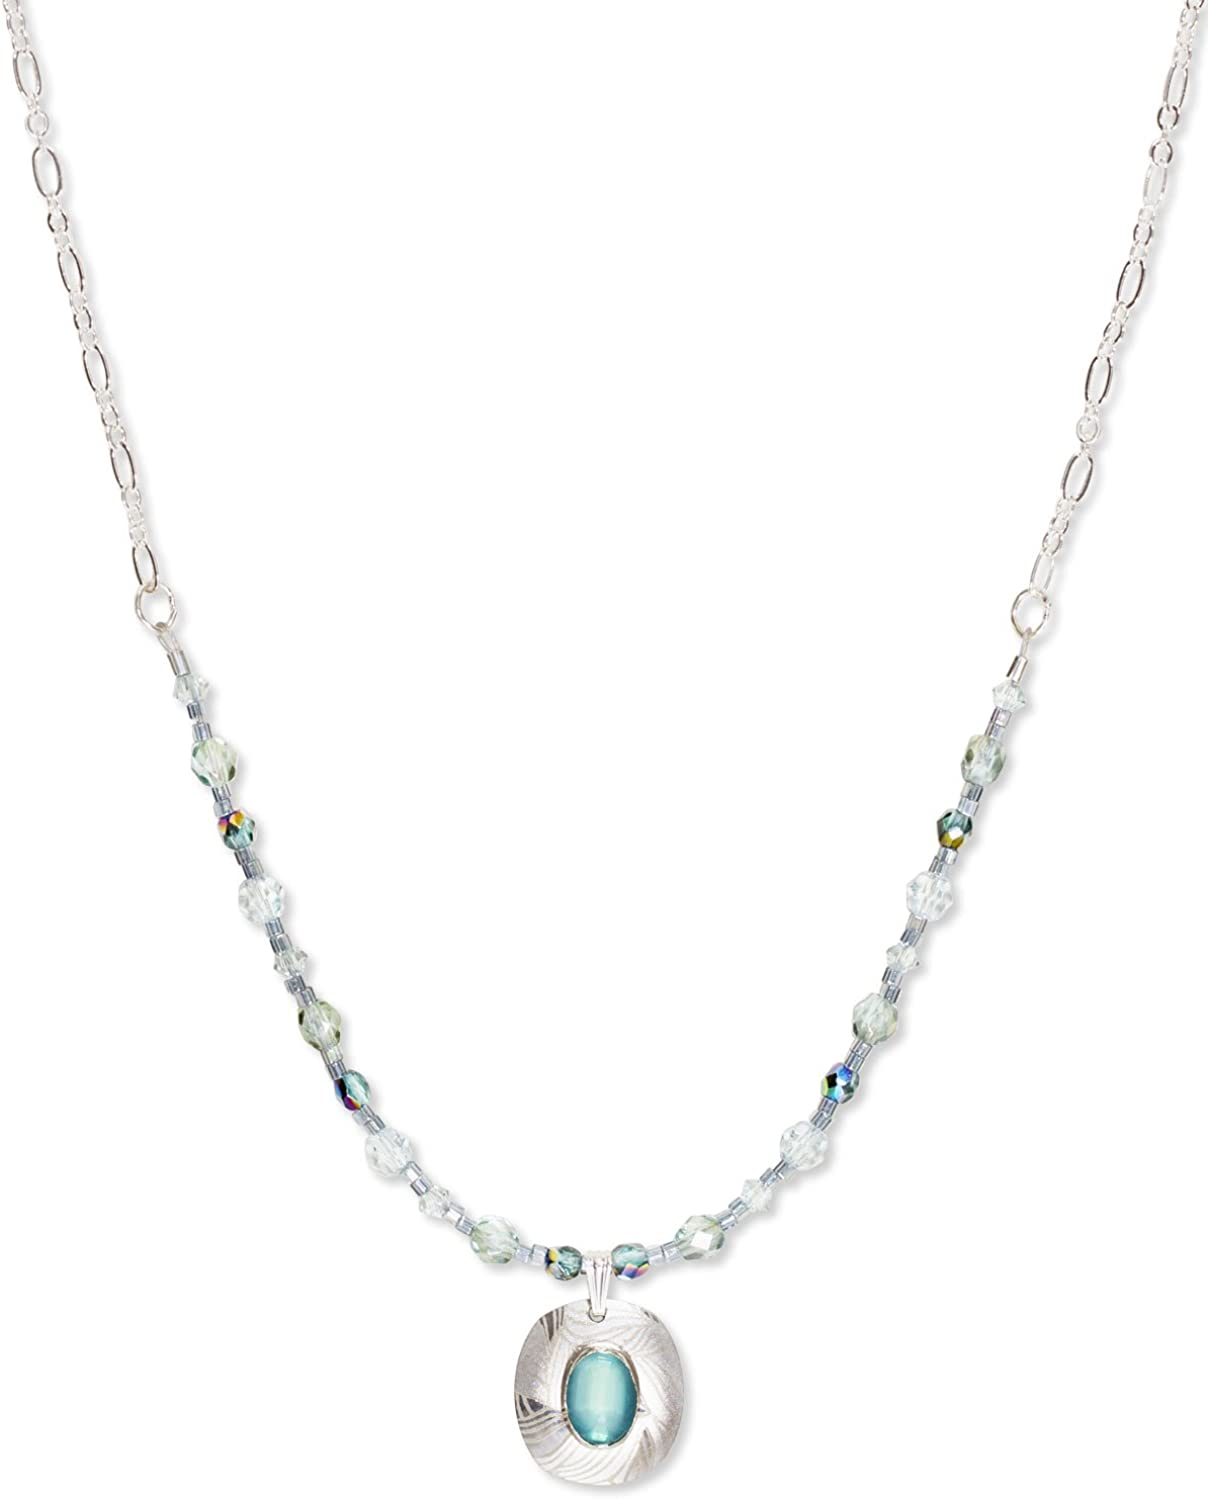 Remarquable Amazon.com: Holly Yashi Synergy Beaded Necklace, Hypoallergenic QL-36